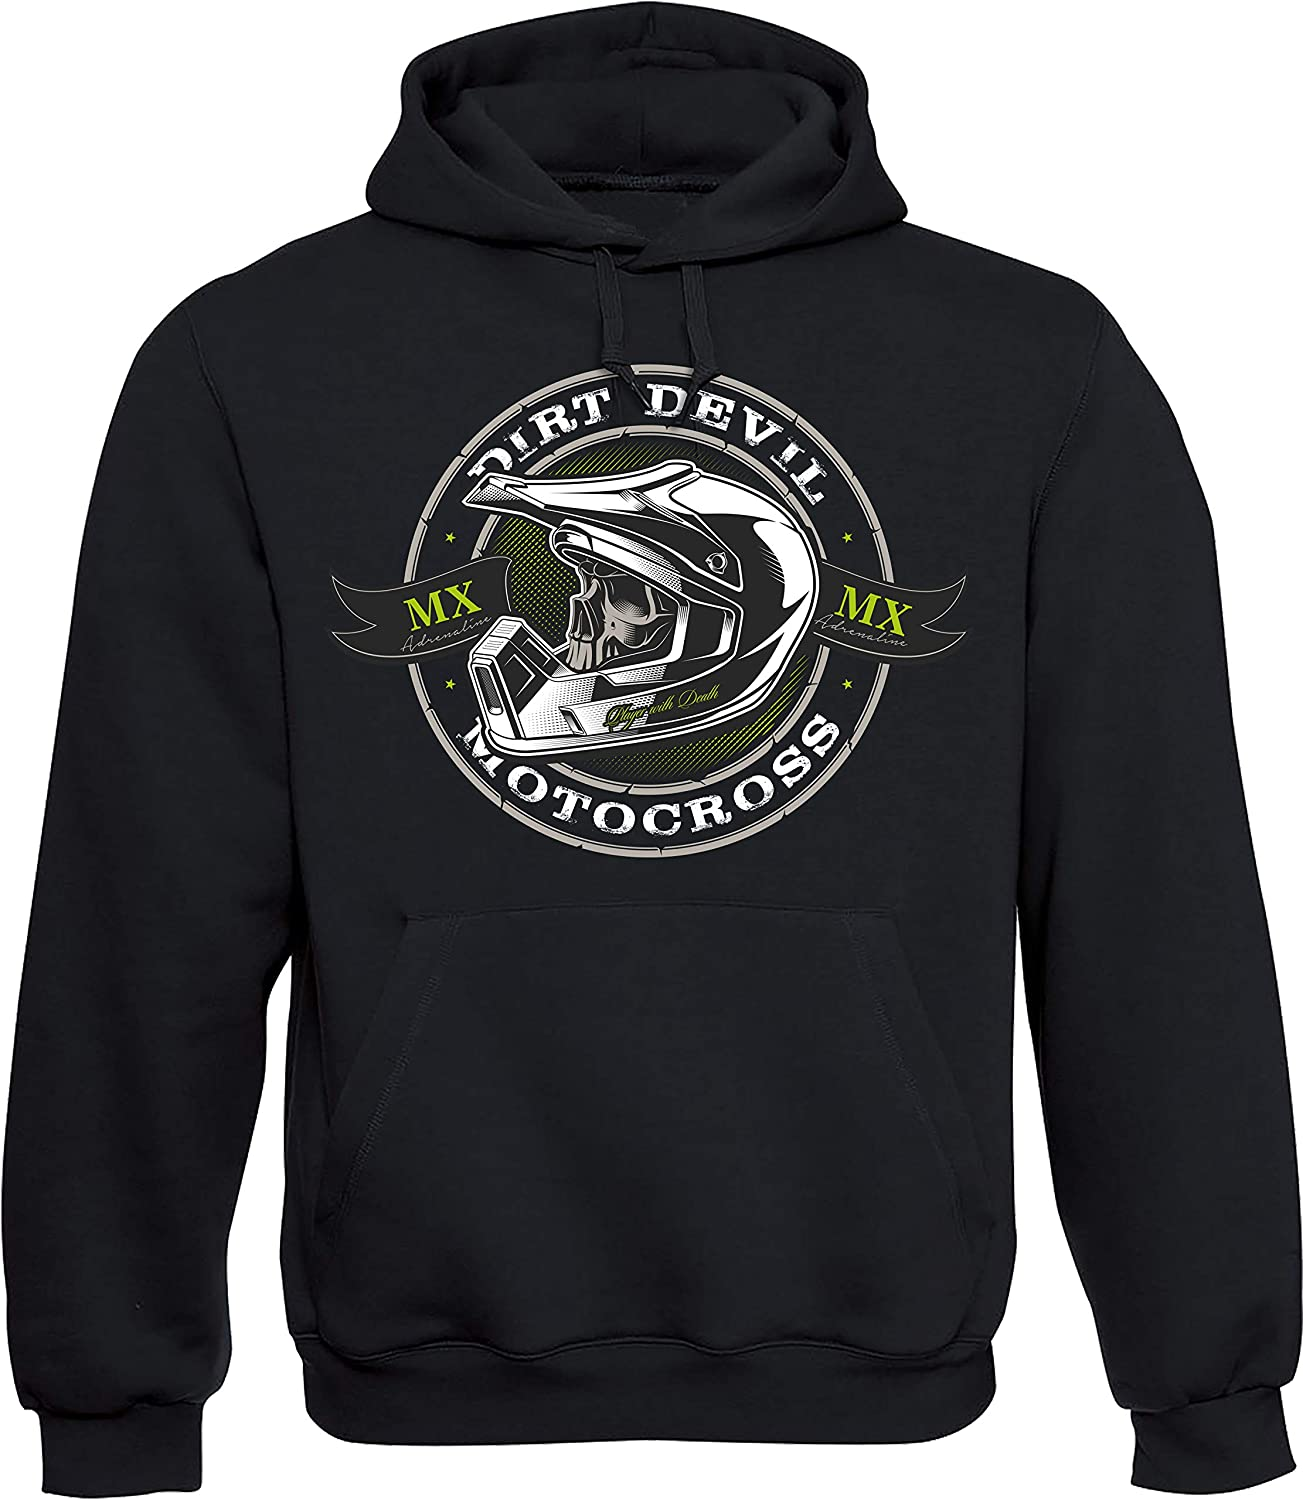 Sweat à Capuche: Dirt Devil Motocross Moto Sweater Moto Cross MX Biker Motocycle Quad Motocycliste Idée Cadeau Homme s Femme s Outdoor